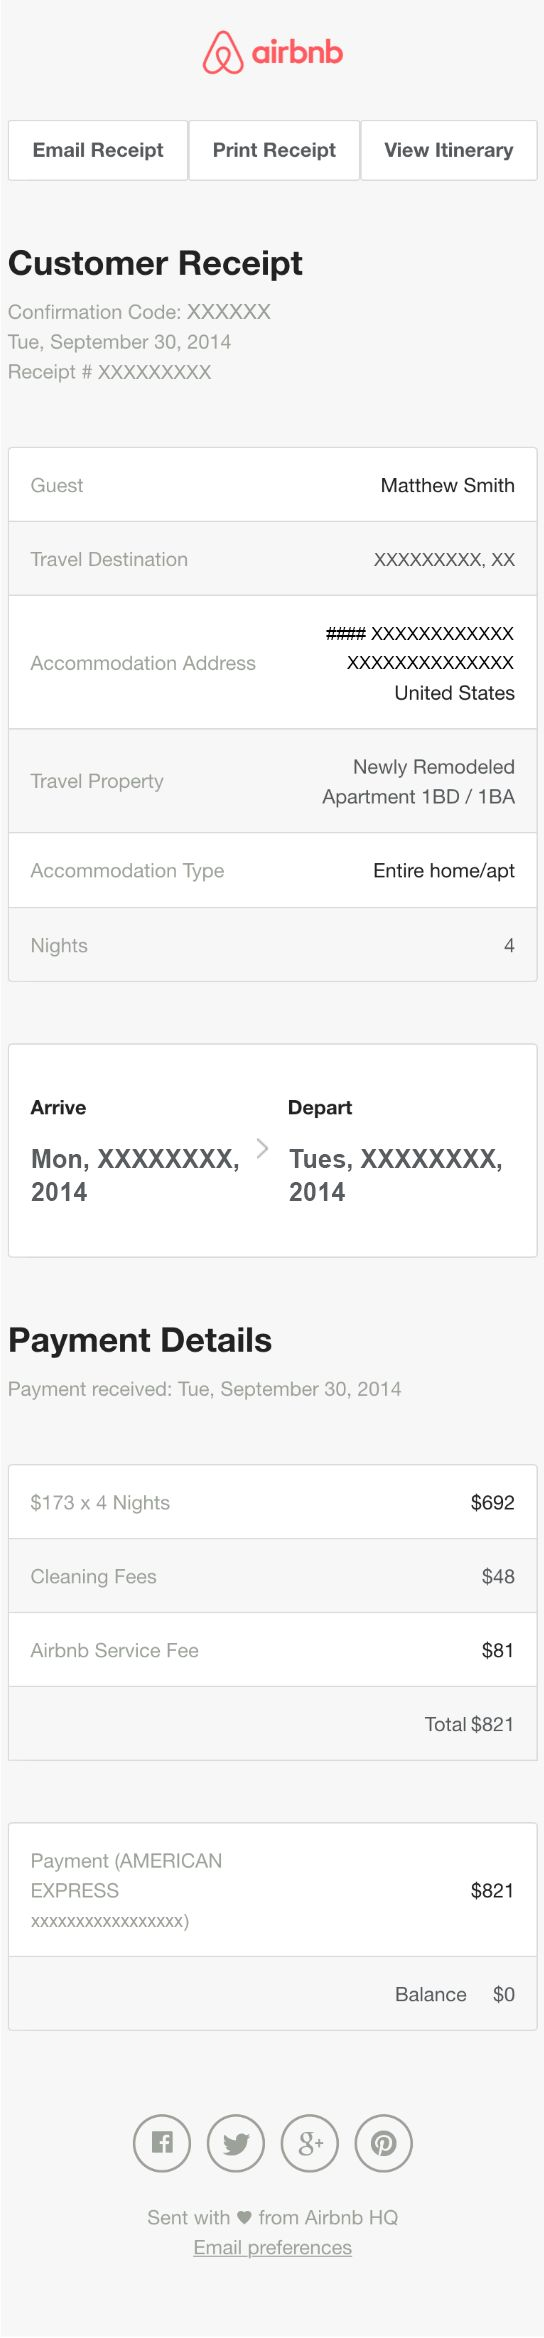 Receipt Email Design from AirBNB